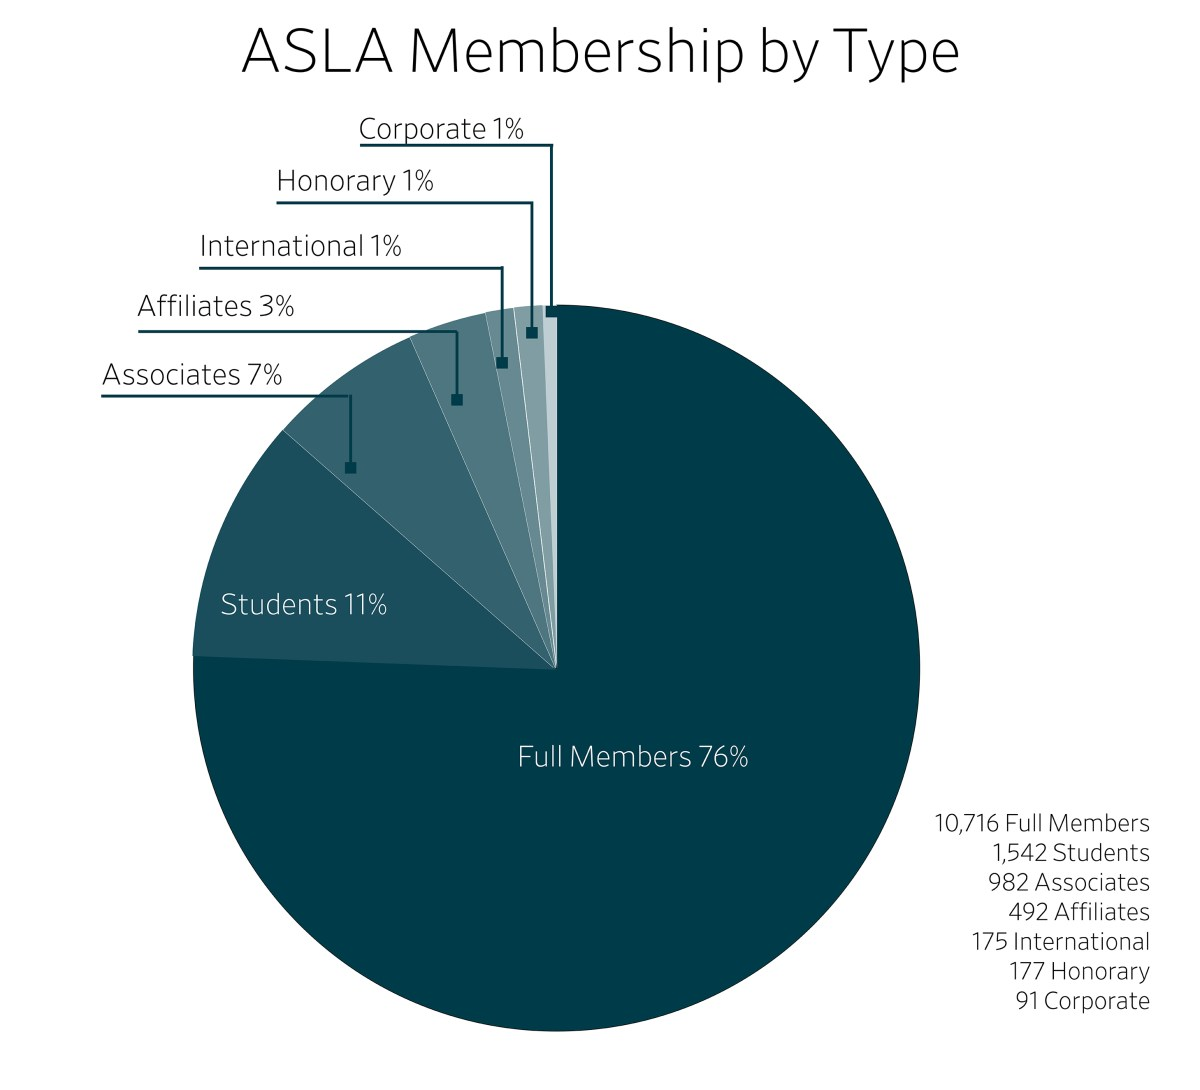 ASLA 2020 Membership Chart by Type